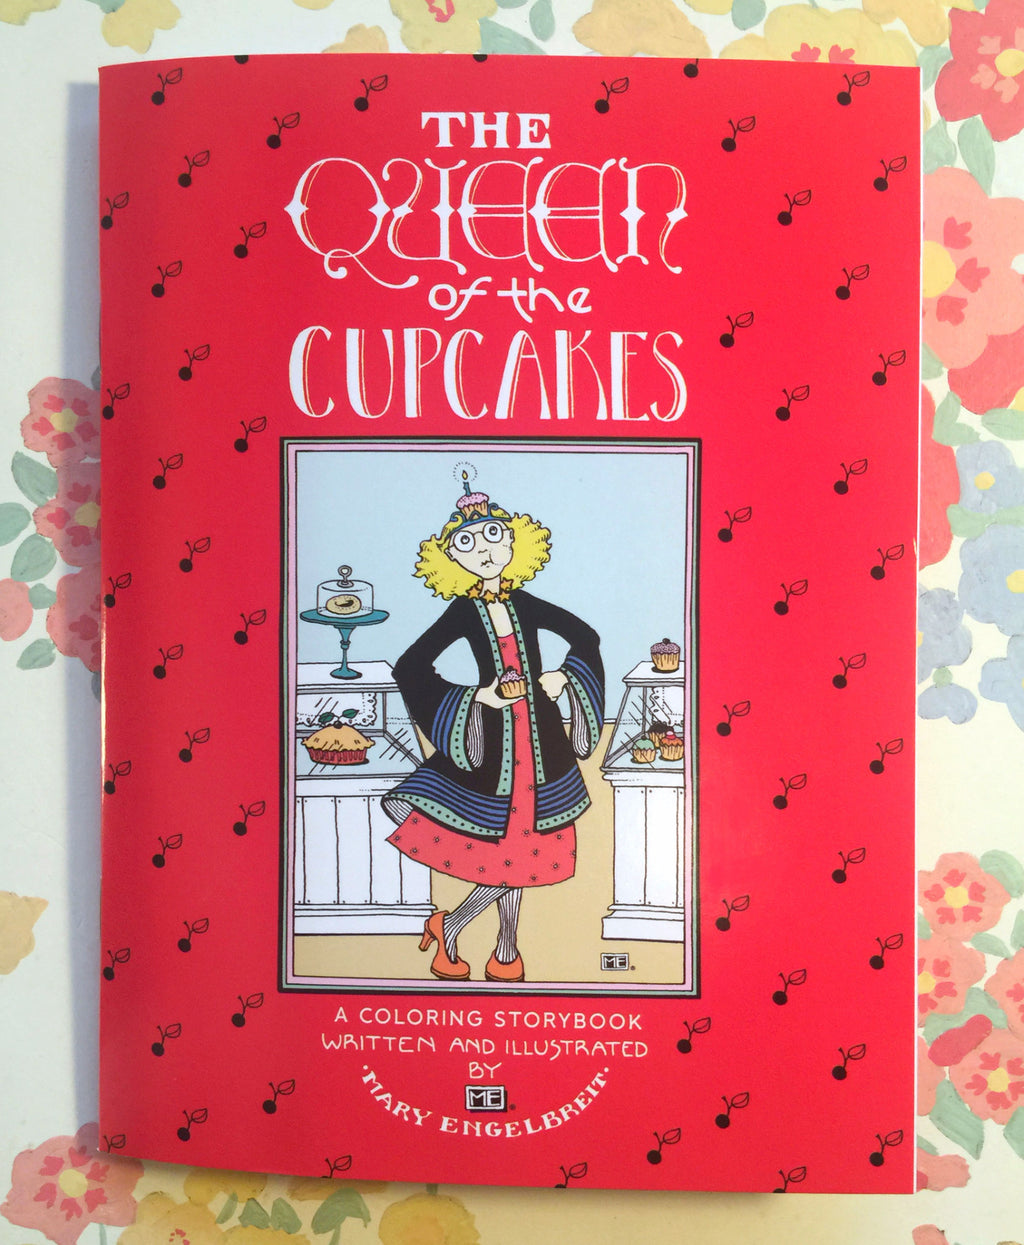 The Queen of the Cupcakes Coloring Storybook